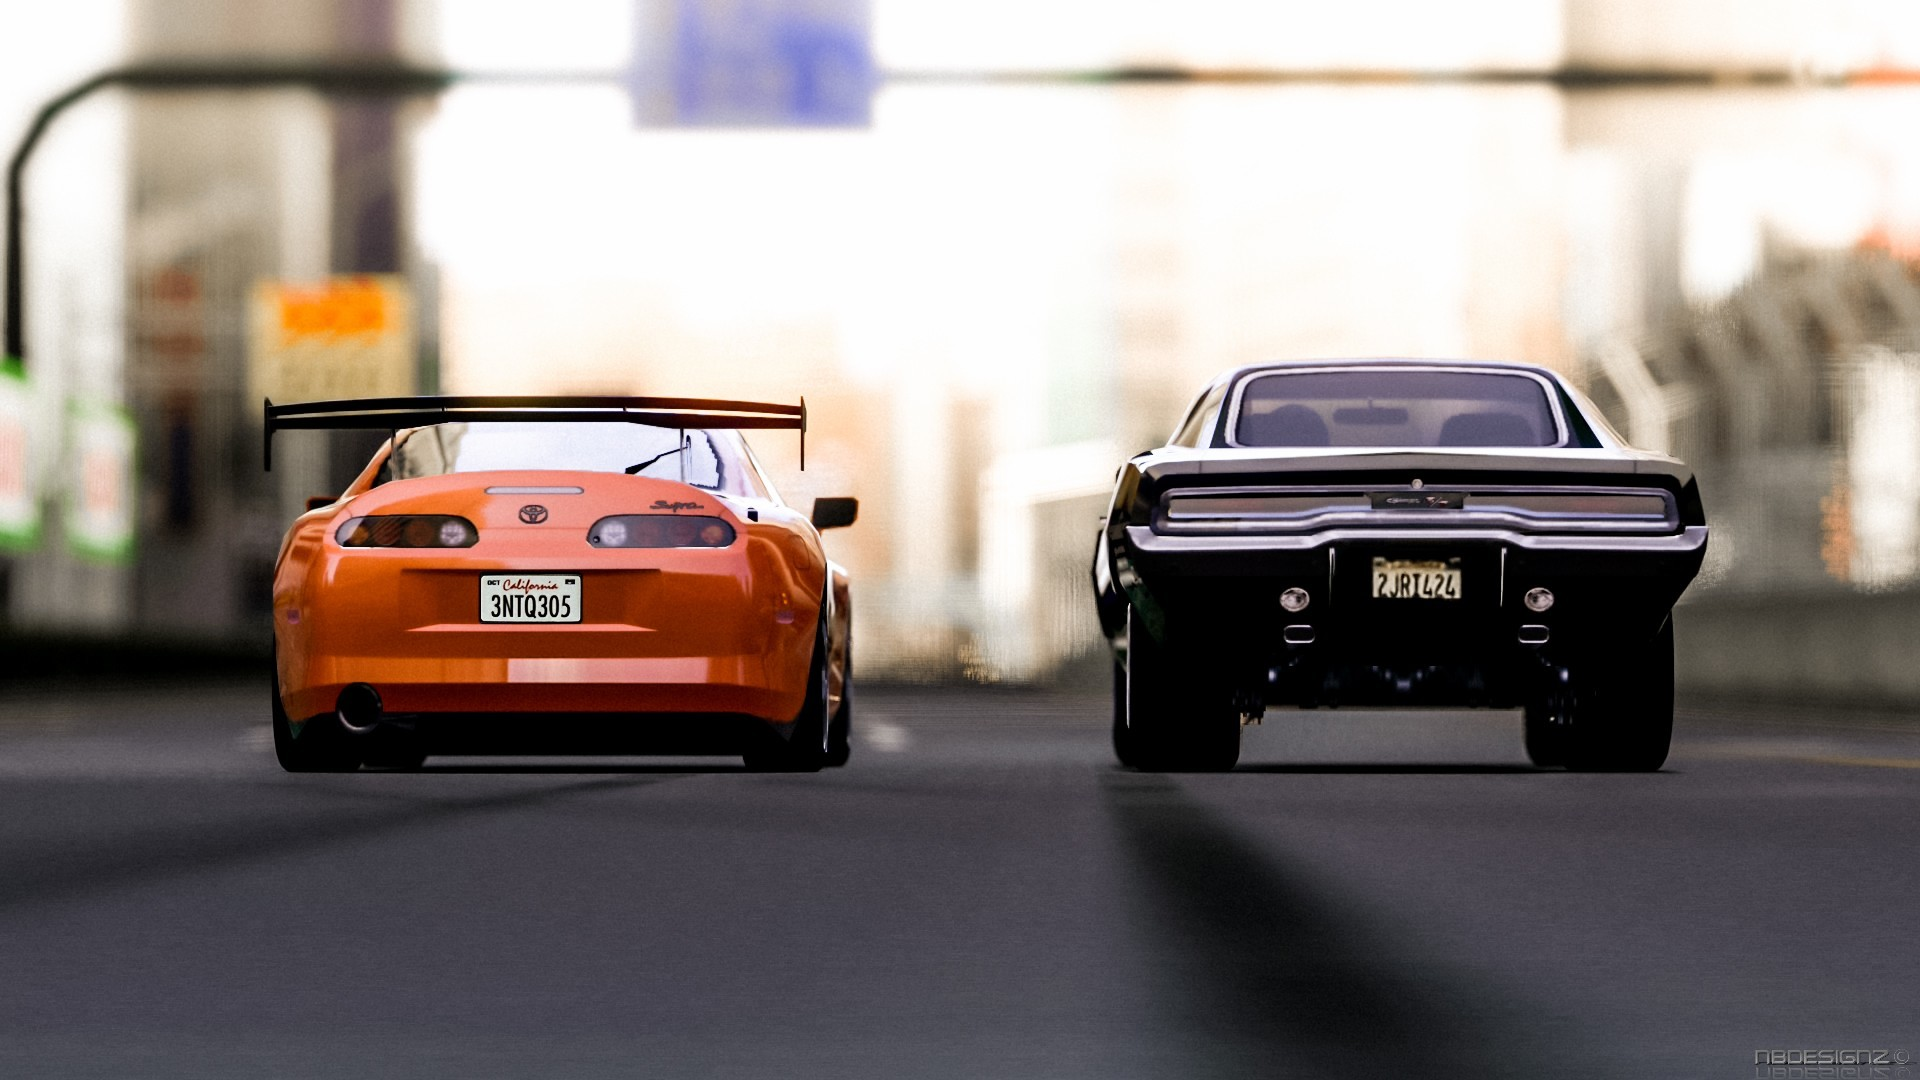 Fast & Furious Wallpapers